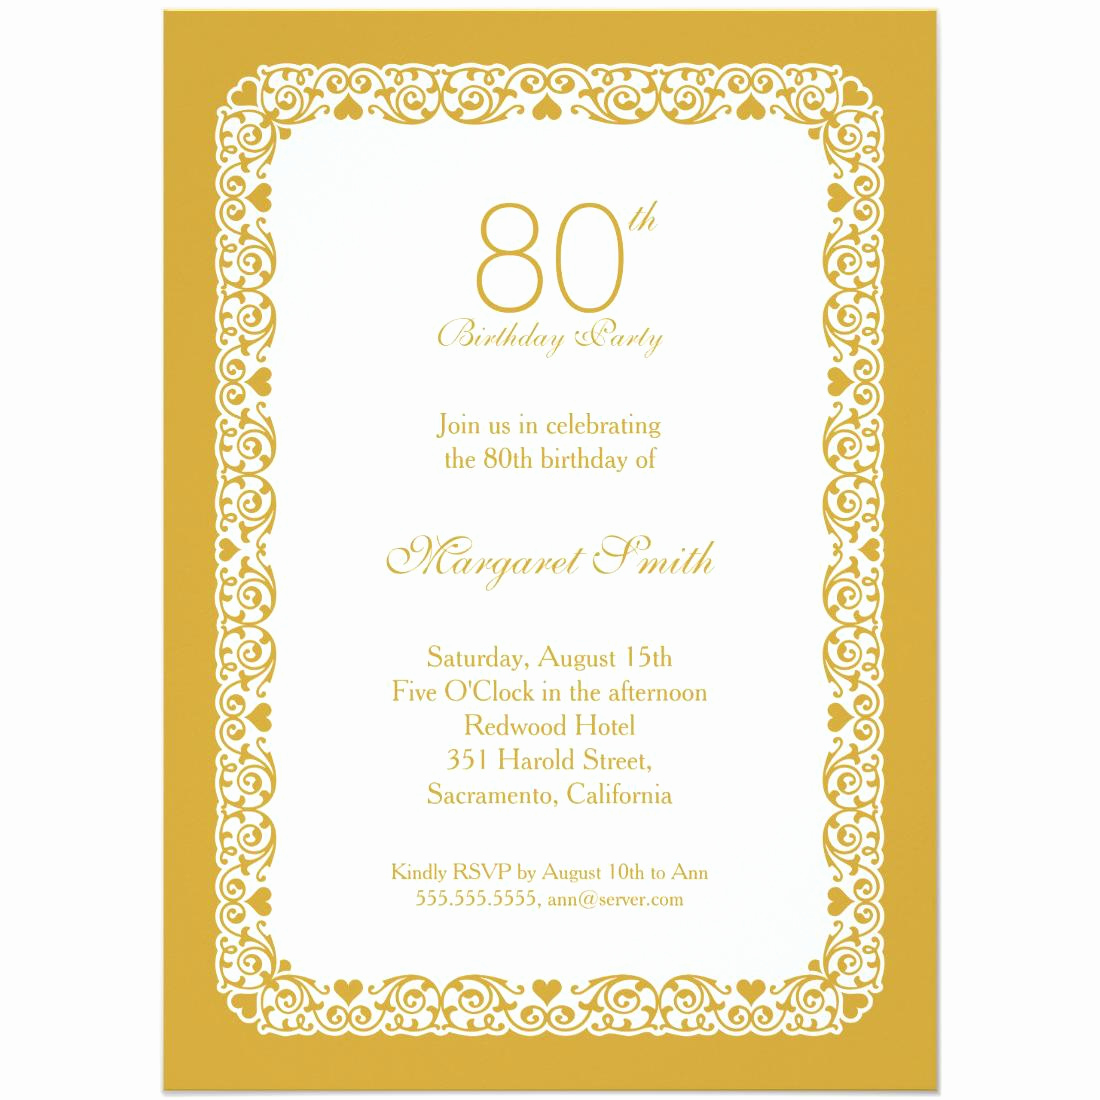 80th Birthday Invitation Templates Inspirational 15 Sample 80th Birthday Invitations Templates Ideas